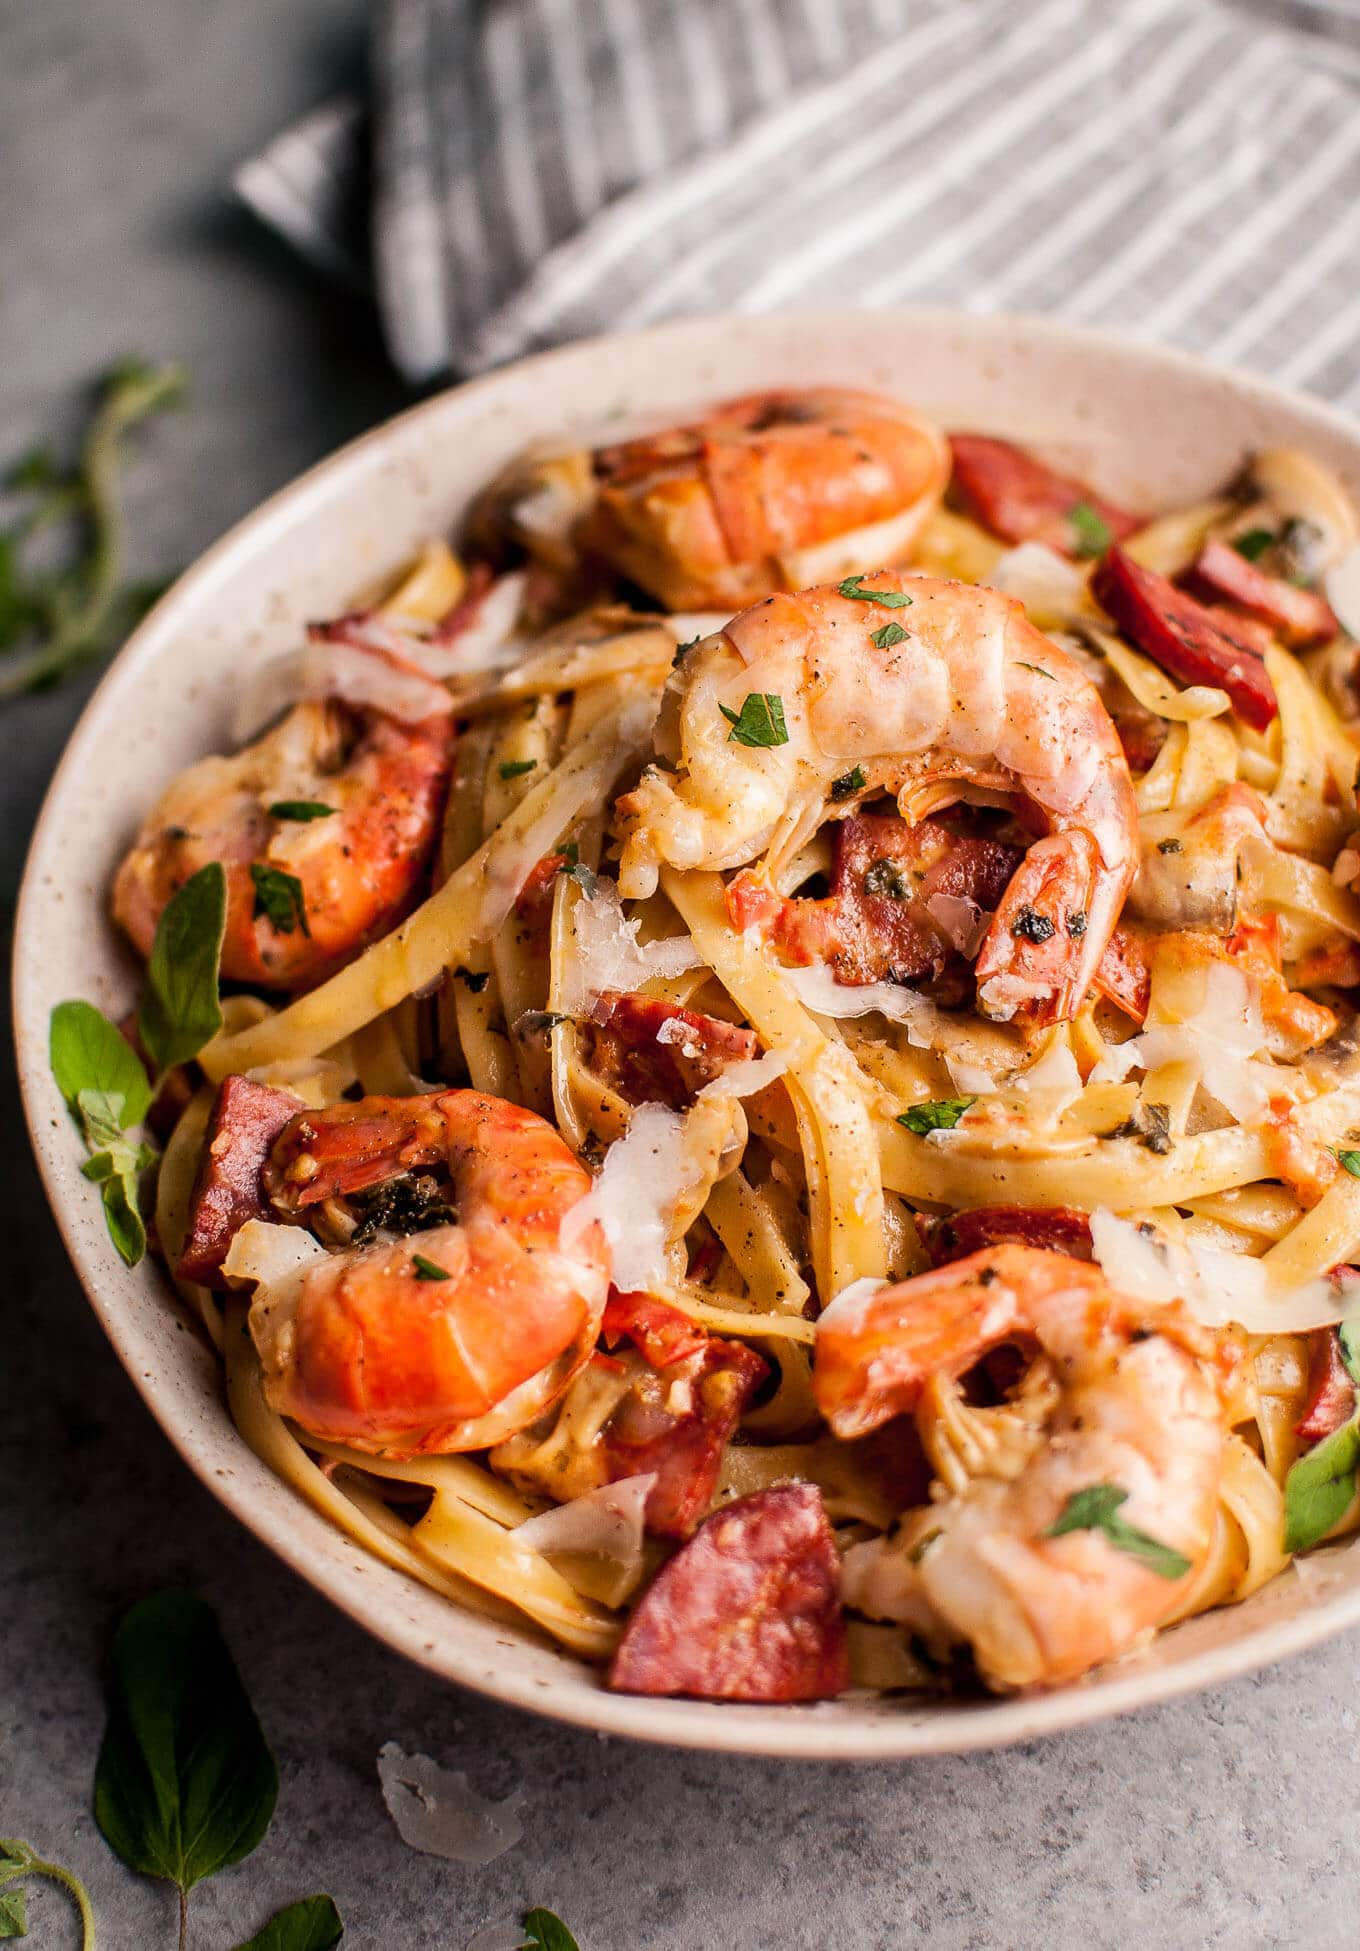 This quick and simple shrimp and chorizo pasta with mushrooms is full of flavor and won't disappoint!